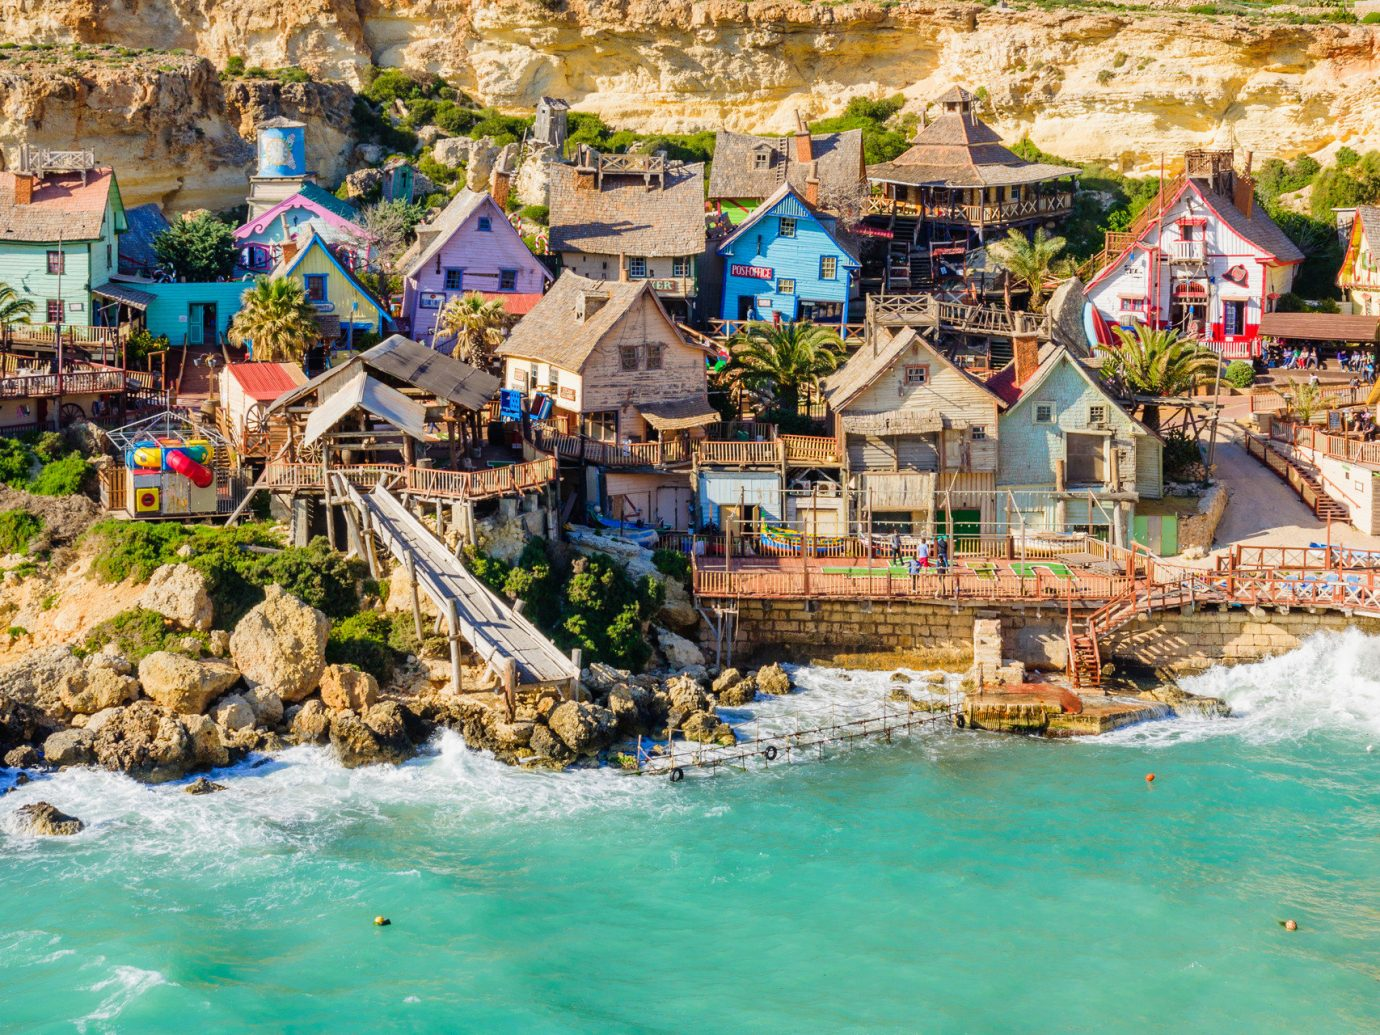 Travel Tips Trip Ideas water outdoor Town vacation Sea Village tourism Resort River Water park amusement park Beach swimming pool